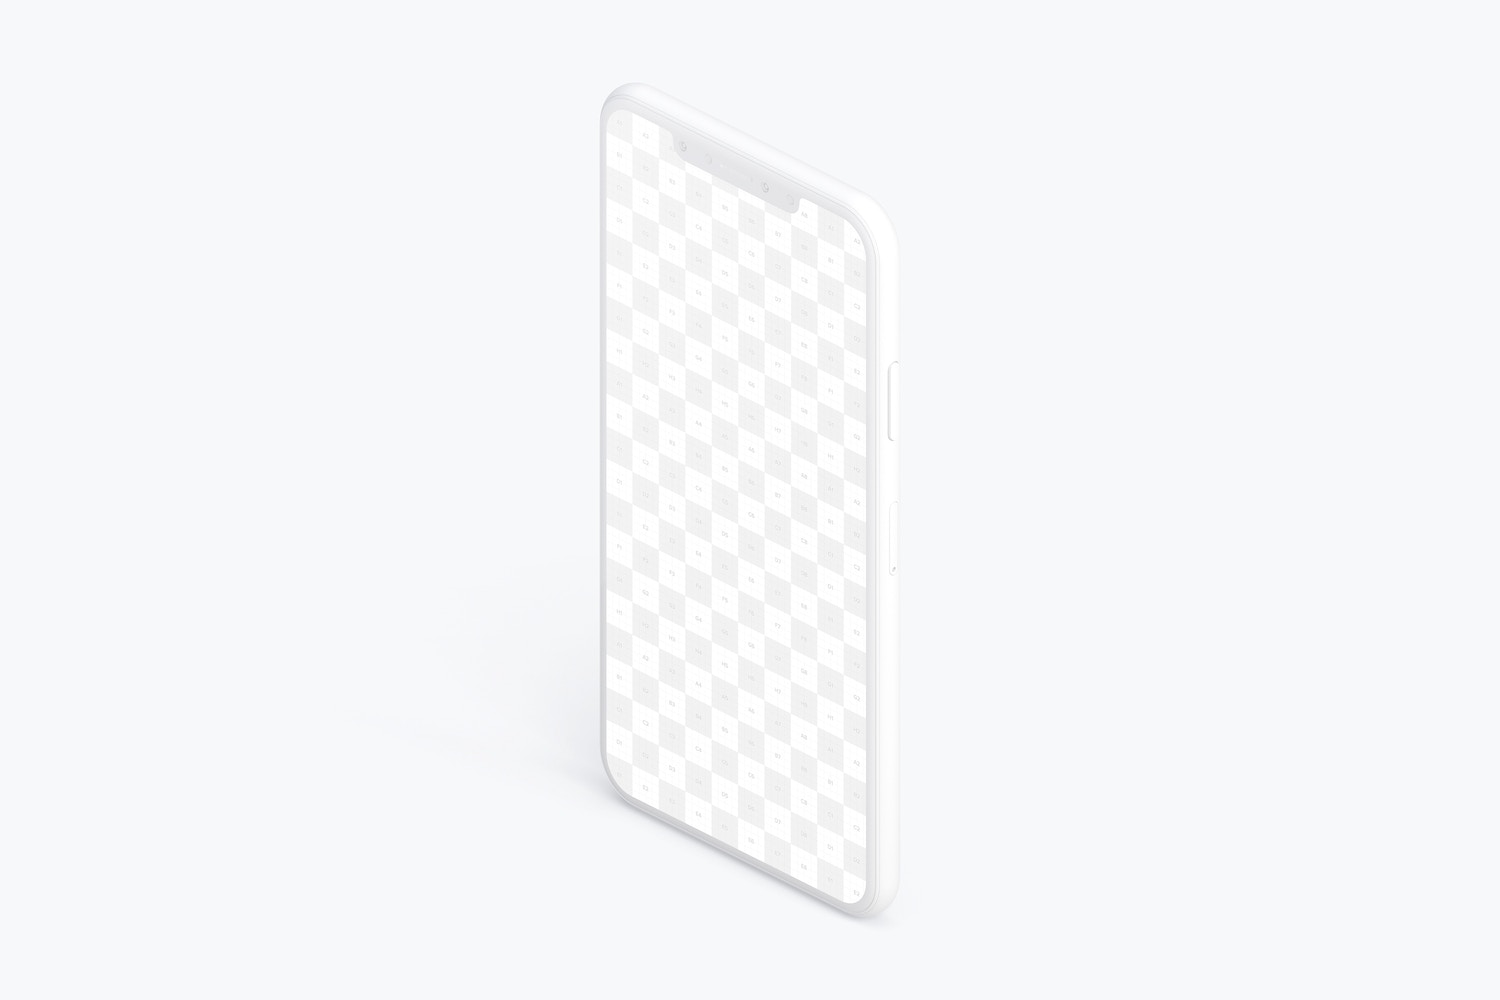 Isometric Clay iPhone XS Max Mockup, Left View 02 (2) by Original Mockups on Original Mockups